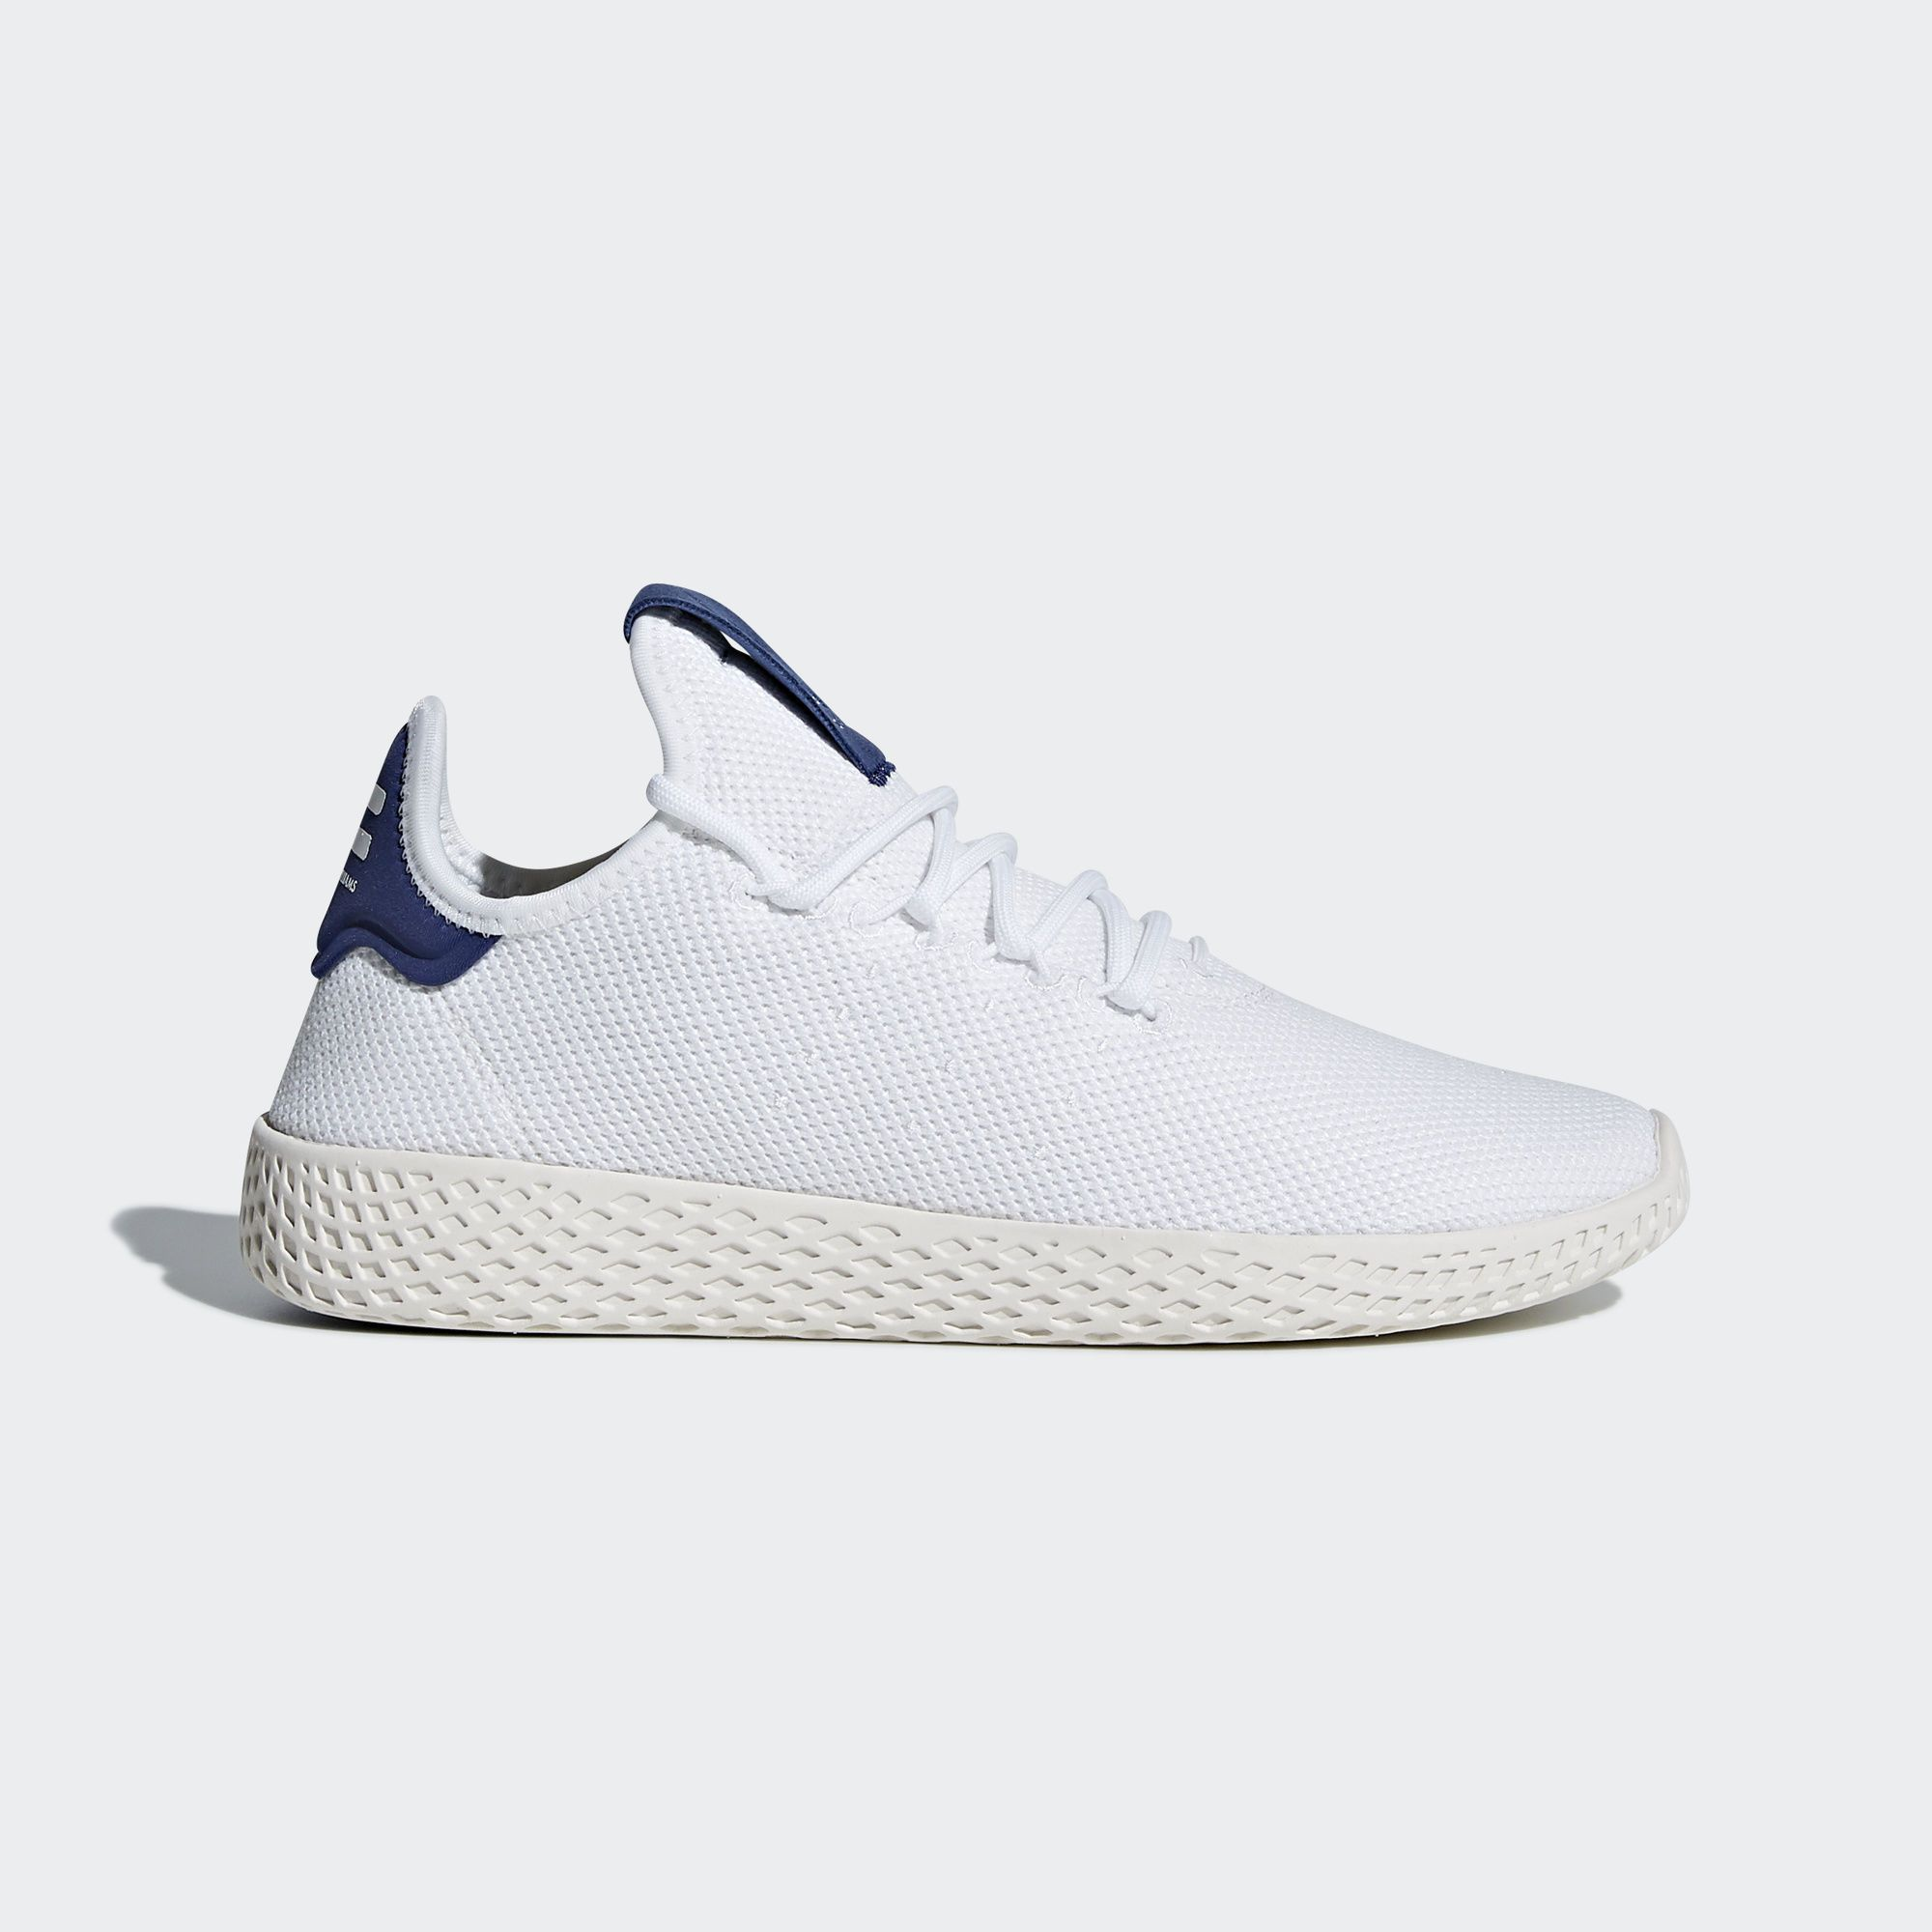 669c830ae Shop the Pharrell Williams Tennis Hu Shoes - White at adidas.com us! See  all the styles and colors of Pharrell Williams Tennis Hu Shoes - White at  the ...